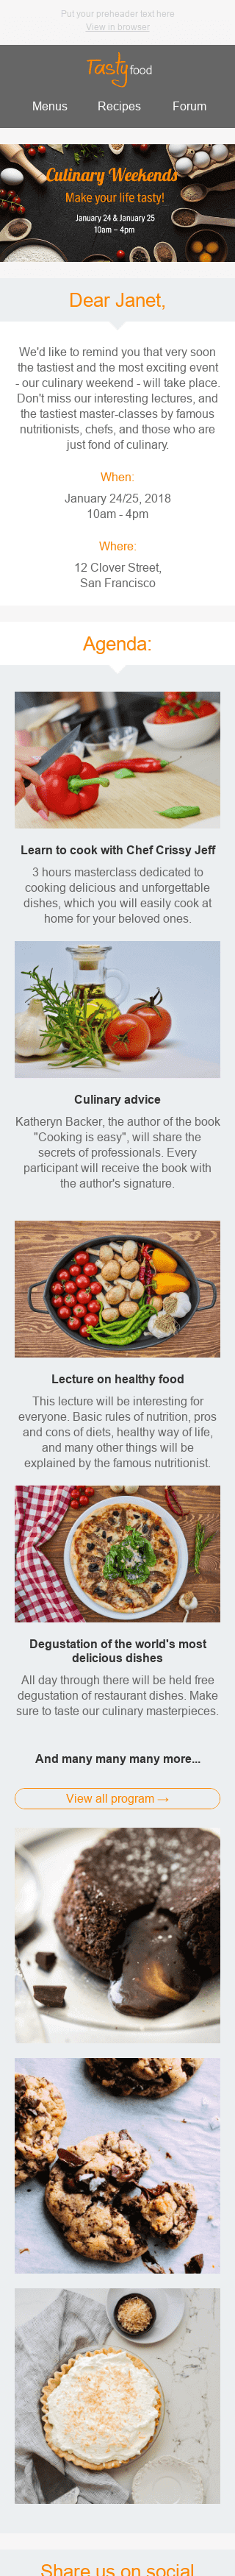 "Event Reminder Email Template ""Culinary Weekend"" for Food industry mobile view"